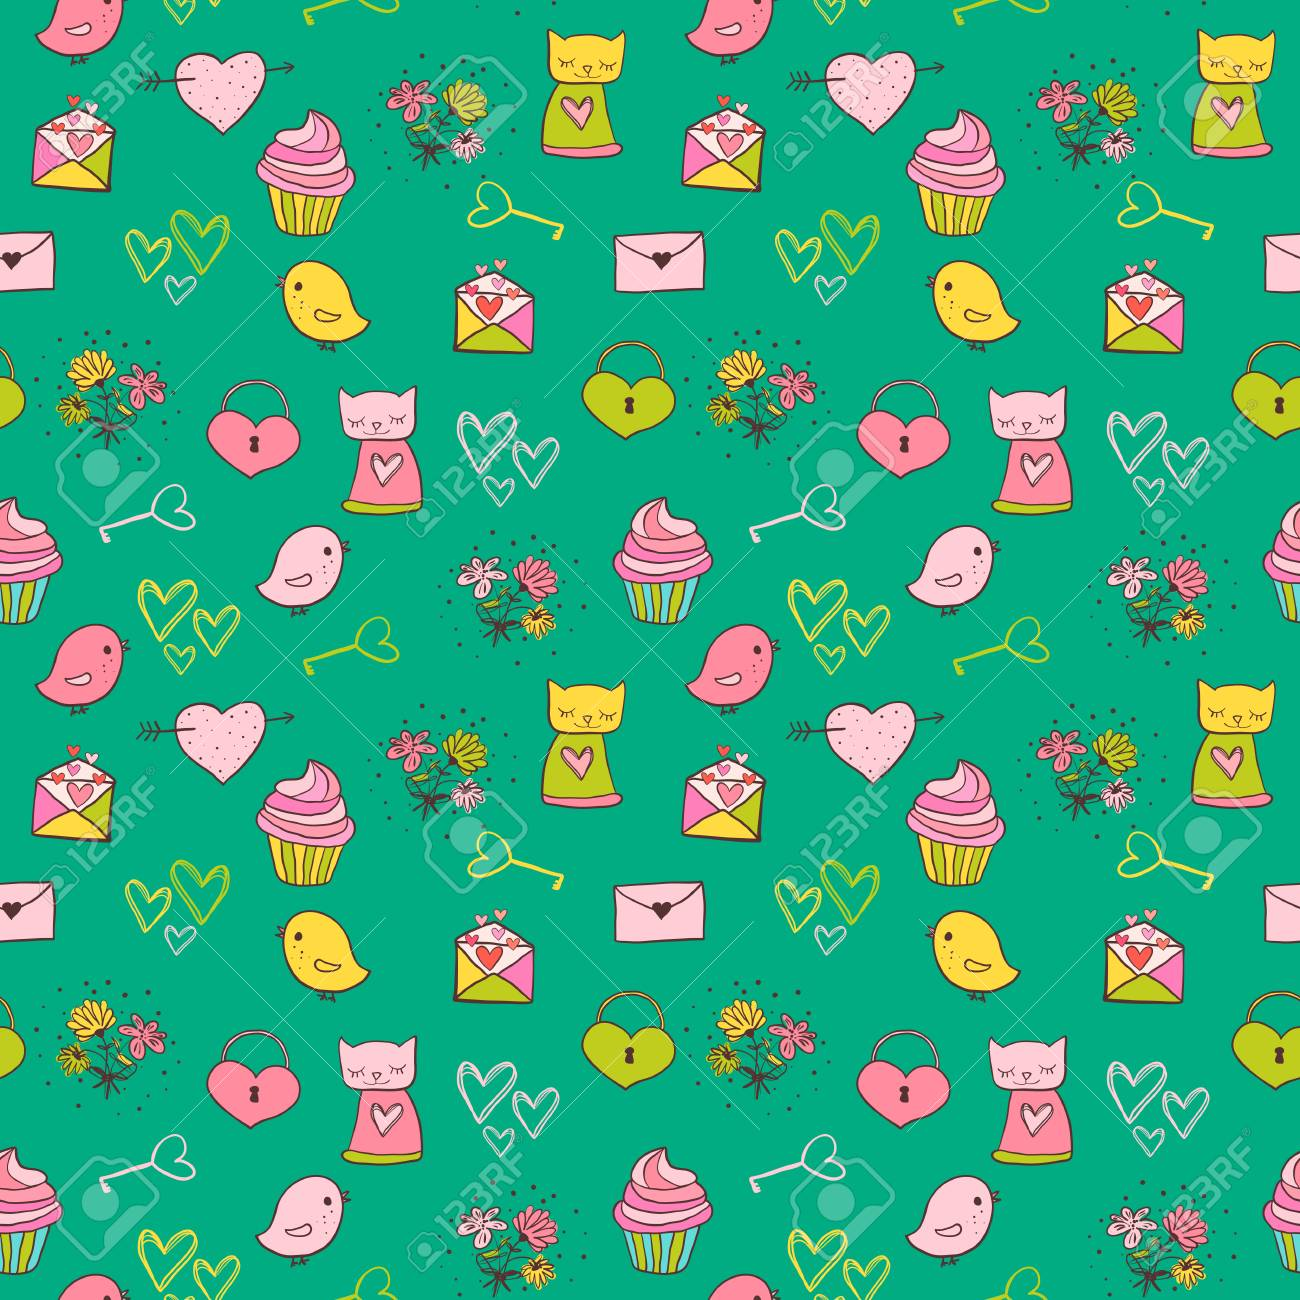 Cute And Colorful Vector Seamless Pattern With Cats Cupcakes For Backgrounds Kid Birthday Invitations